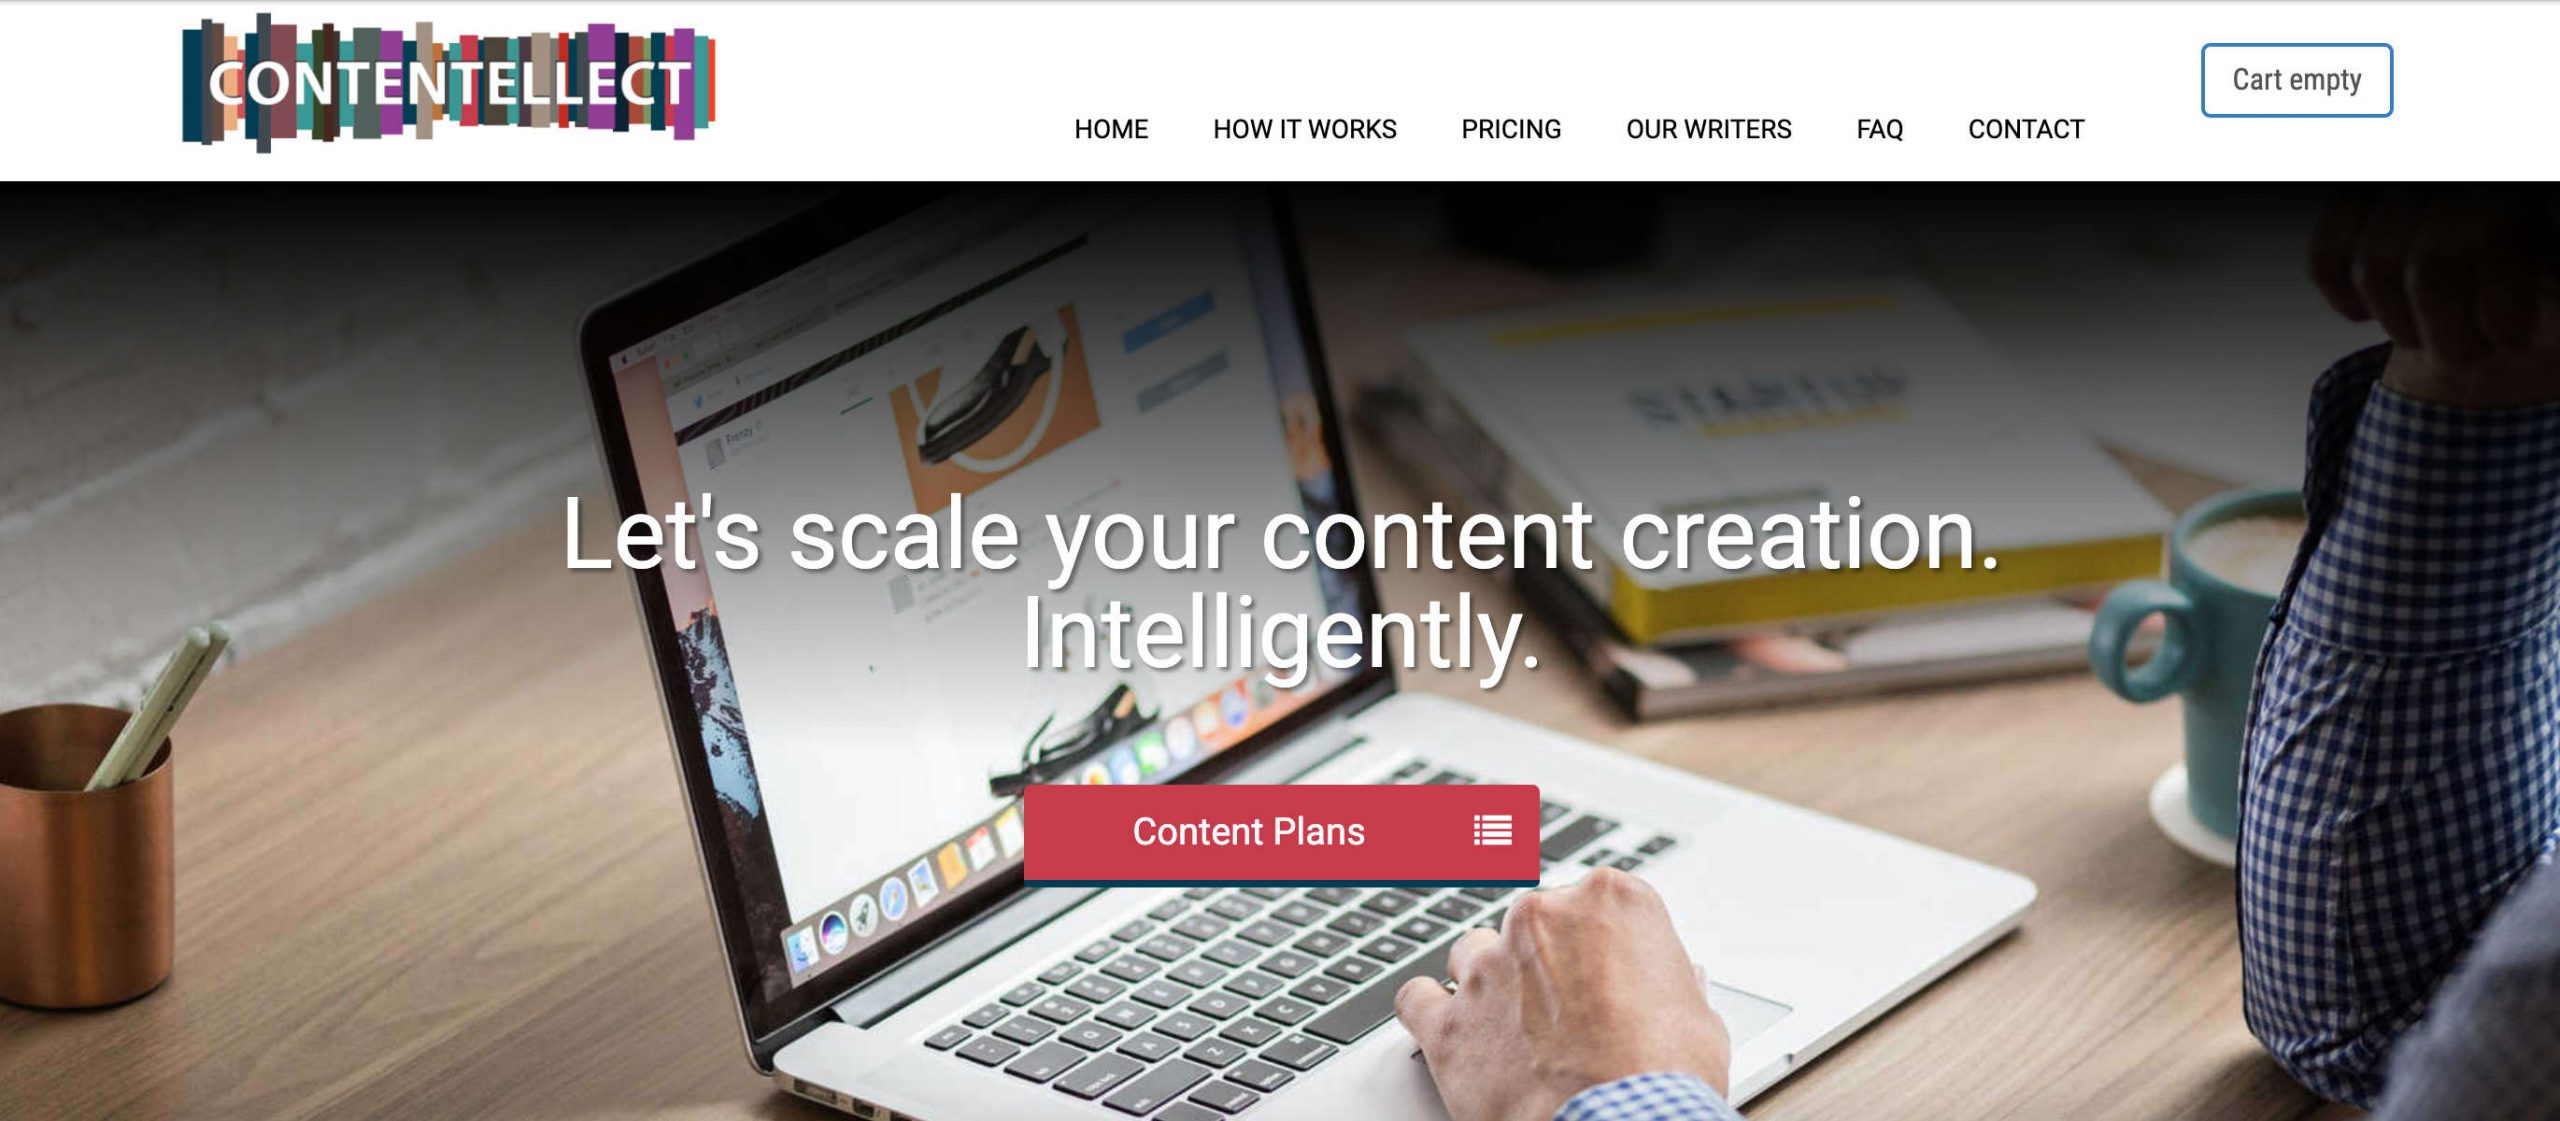 scale business contentellect 2018